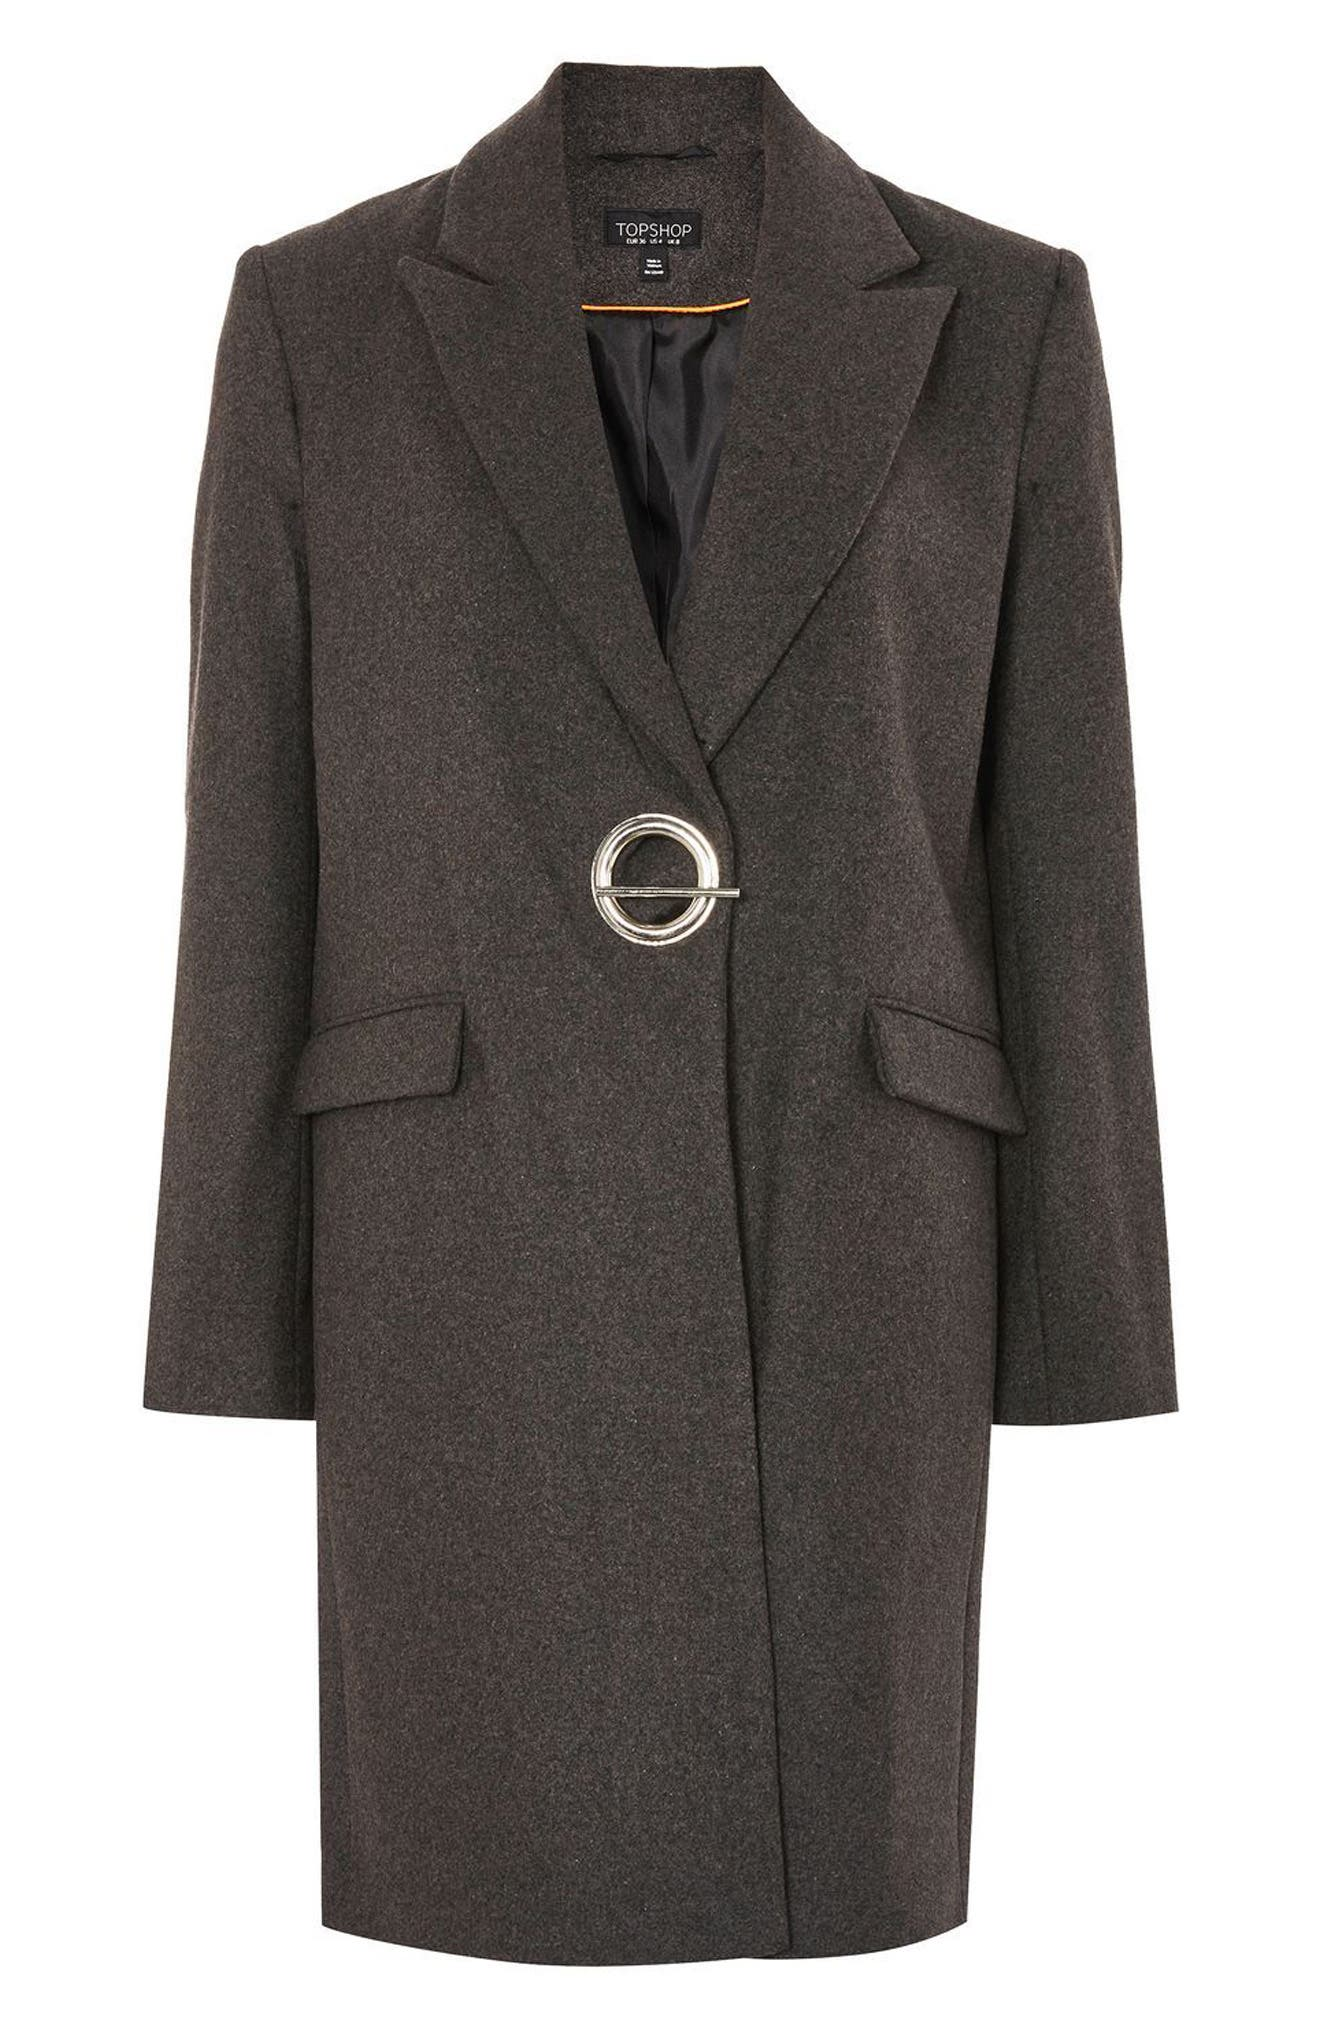 Peak Lapel Coat,                             Alternate thumbnail 3, color,                             Grey